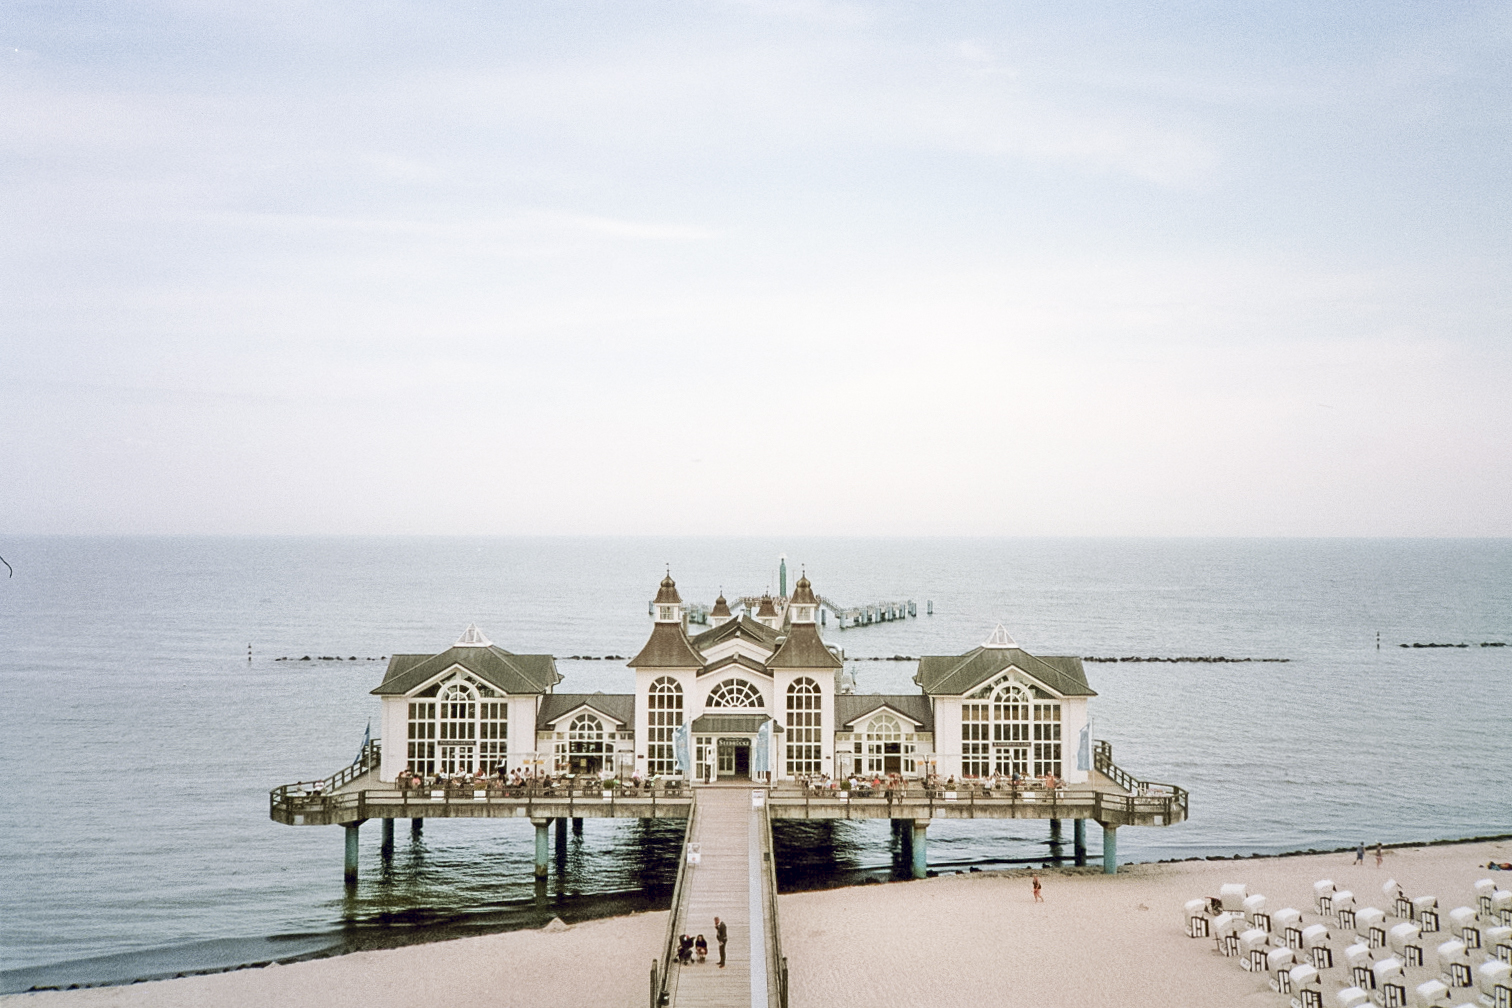 Seebrücke, the most loved postcard of Rügen